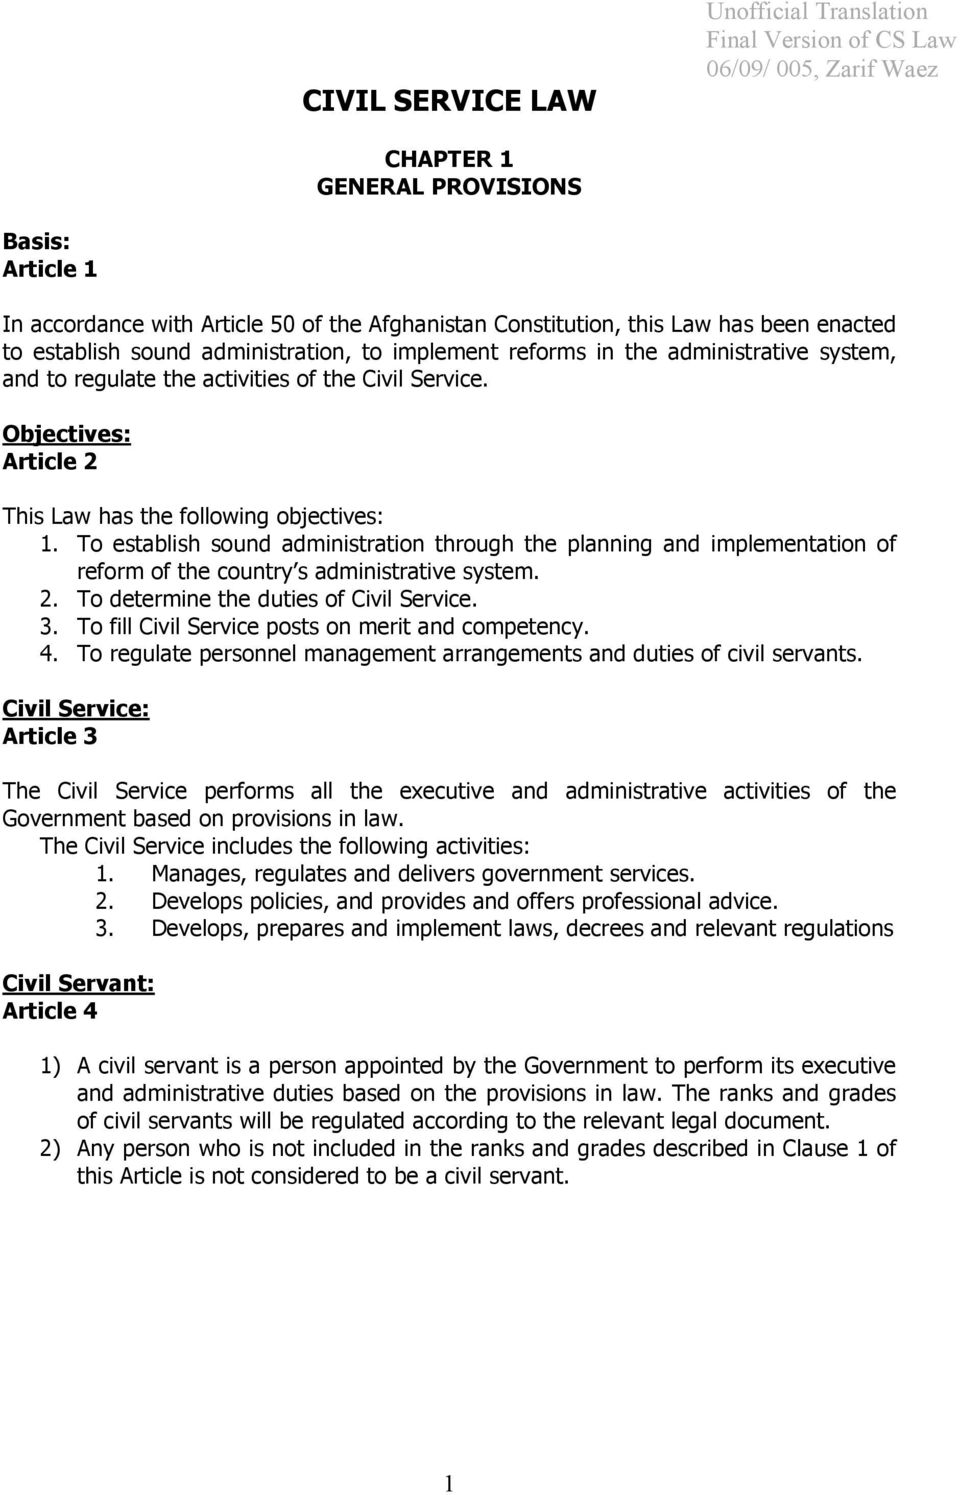 Objectives: Article 2 This Law has the following objectives: 1. To establish sound administration through the planning and implementation of reform of the country s administrative system. 2. To determine the duties of Civil Service.